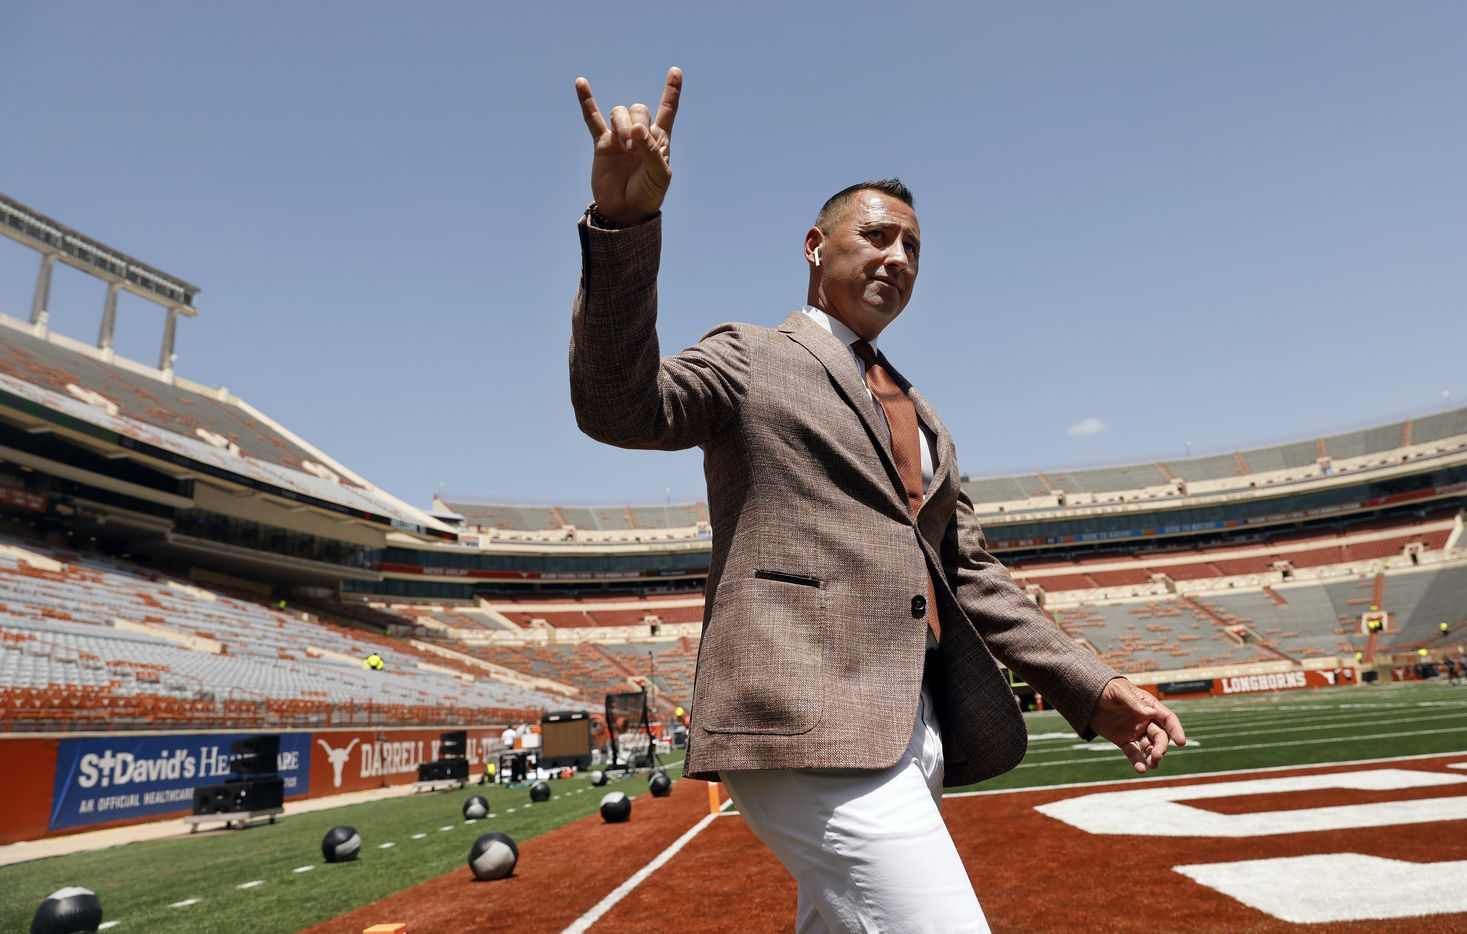 Texas Longhorns head coach Steve Sarkisian gives the Hook'em Horns hand sign as he paces the field before their game against the Louisiana-Lafayette Ragin Cajuns at DKR-Texas Memorial Stadium in Austin, Saturday, September 4, 2021. It's a tradition of his to not go in the locker room right when he gets to the stadium. (Tom Fox/The Dallas Morning News)